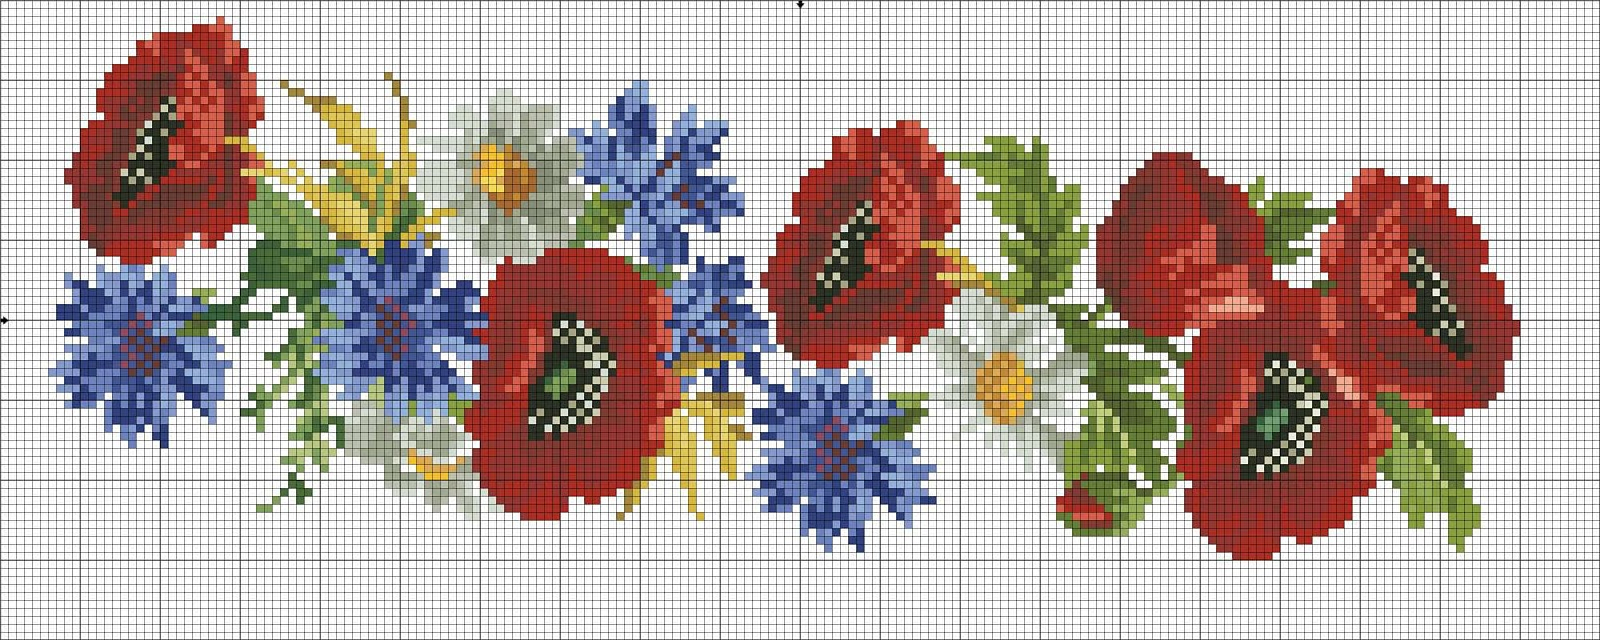 Cross Stitching Patterns - Cross Stitch Patterns Free Printable